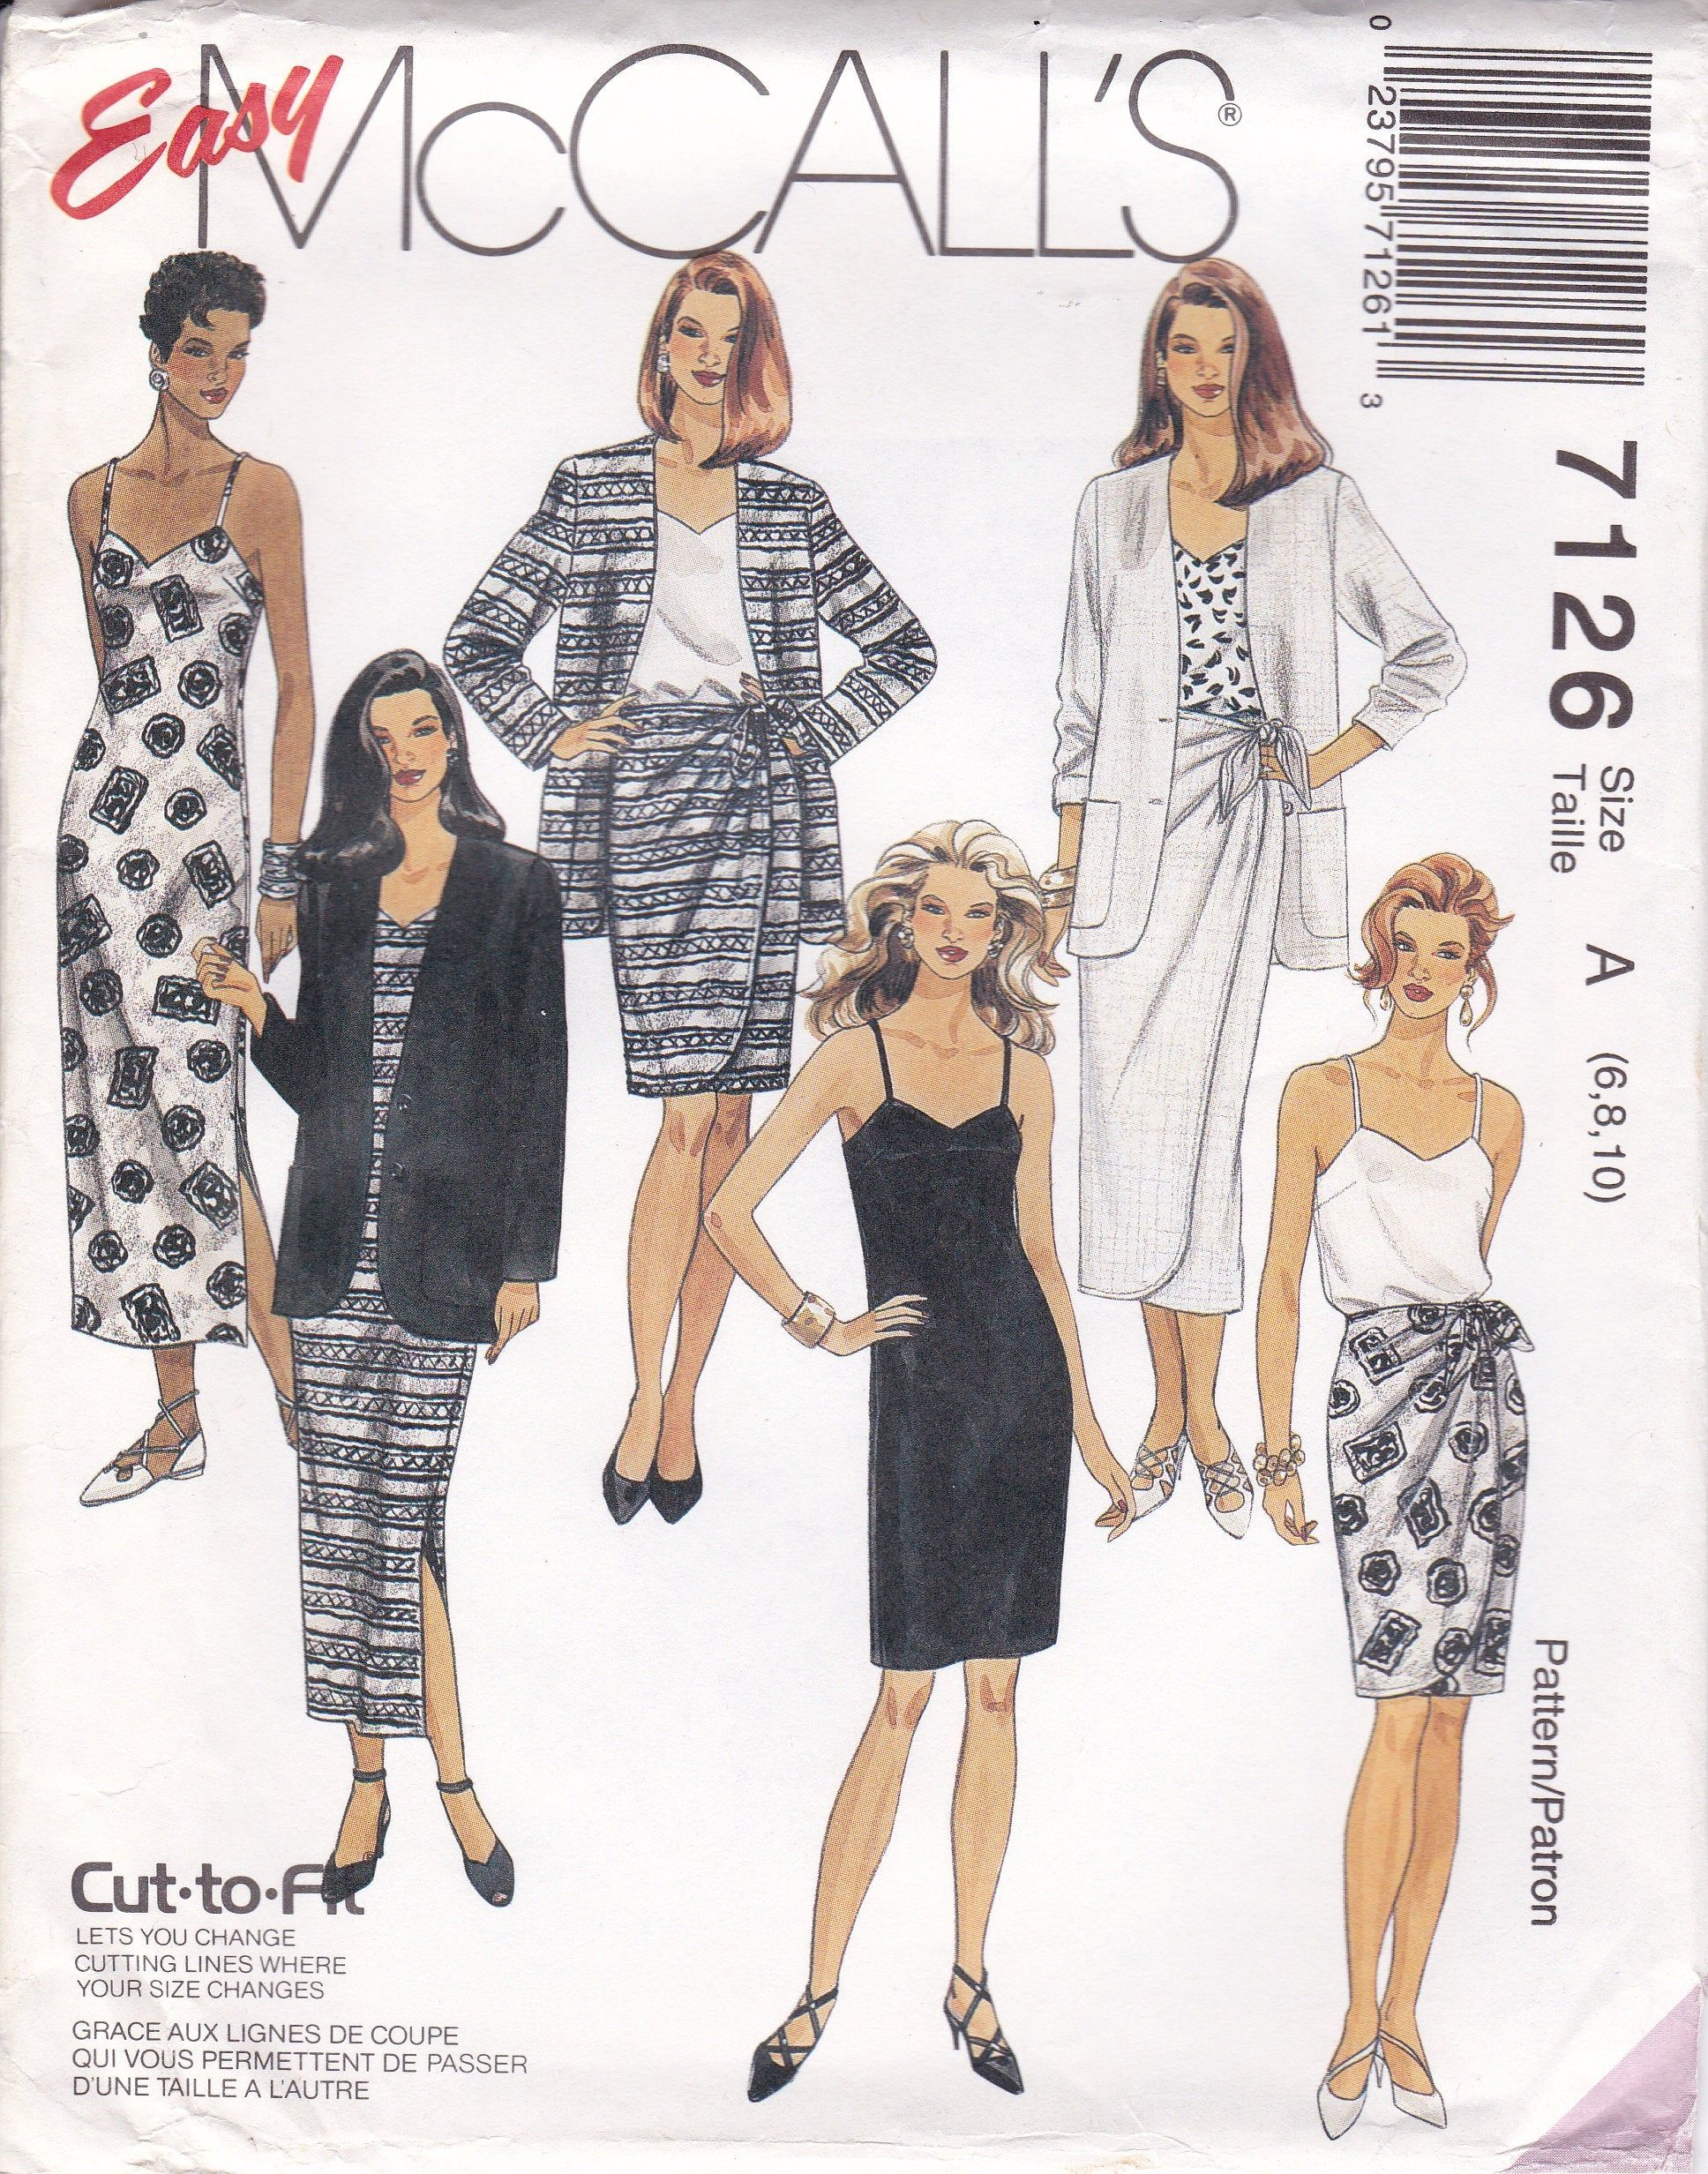 Mccalls Sewing Pattern For Slip Dress Jacket Sarong Skirt Camisole